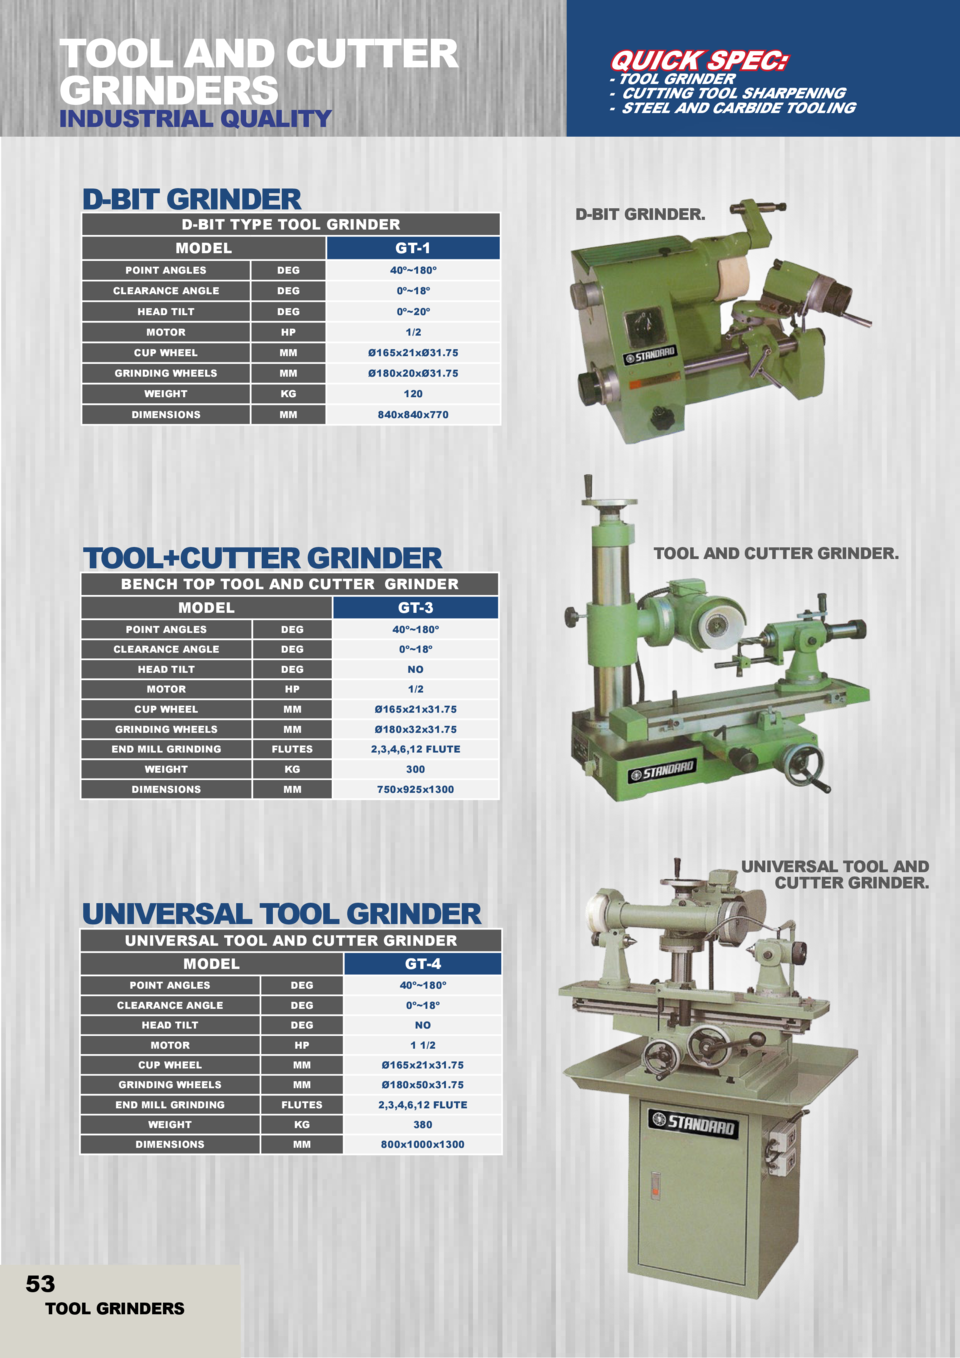 TOOL AND CUTTER GRINDERS INDUSTRIAL QUALITY  D-BIT GRINDER  - TOOL GRINDER - CUTTING TOOL SHARPENING - STEEL AND CARBIDE T...